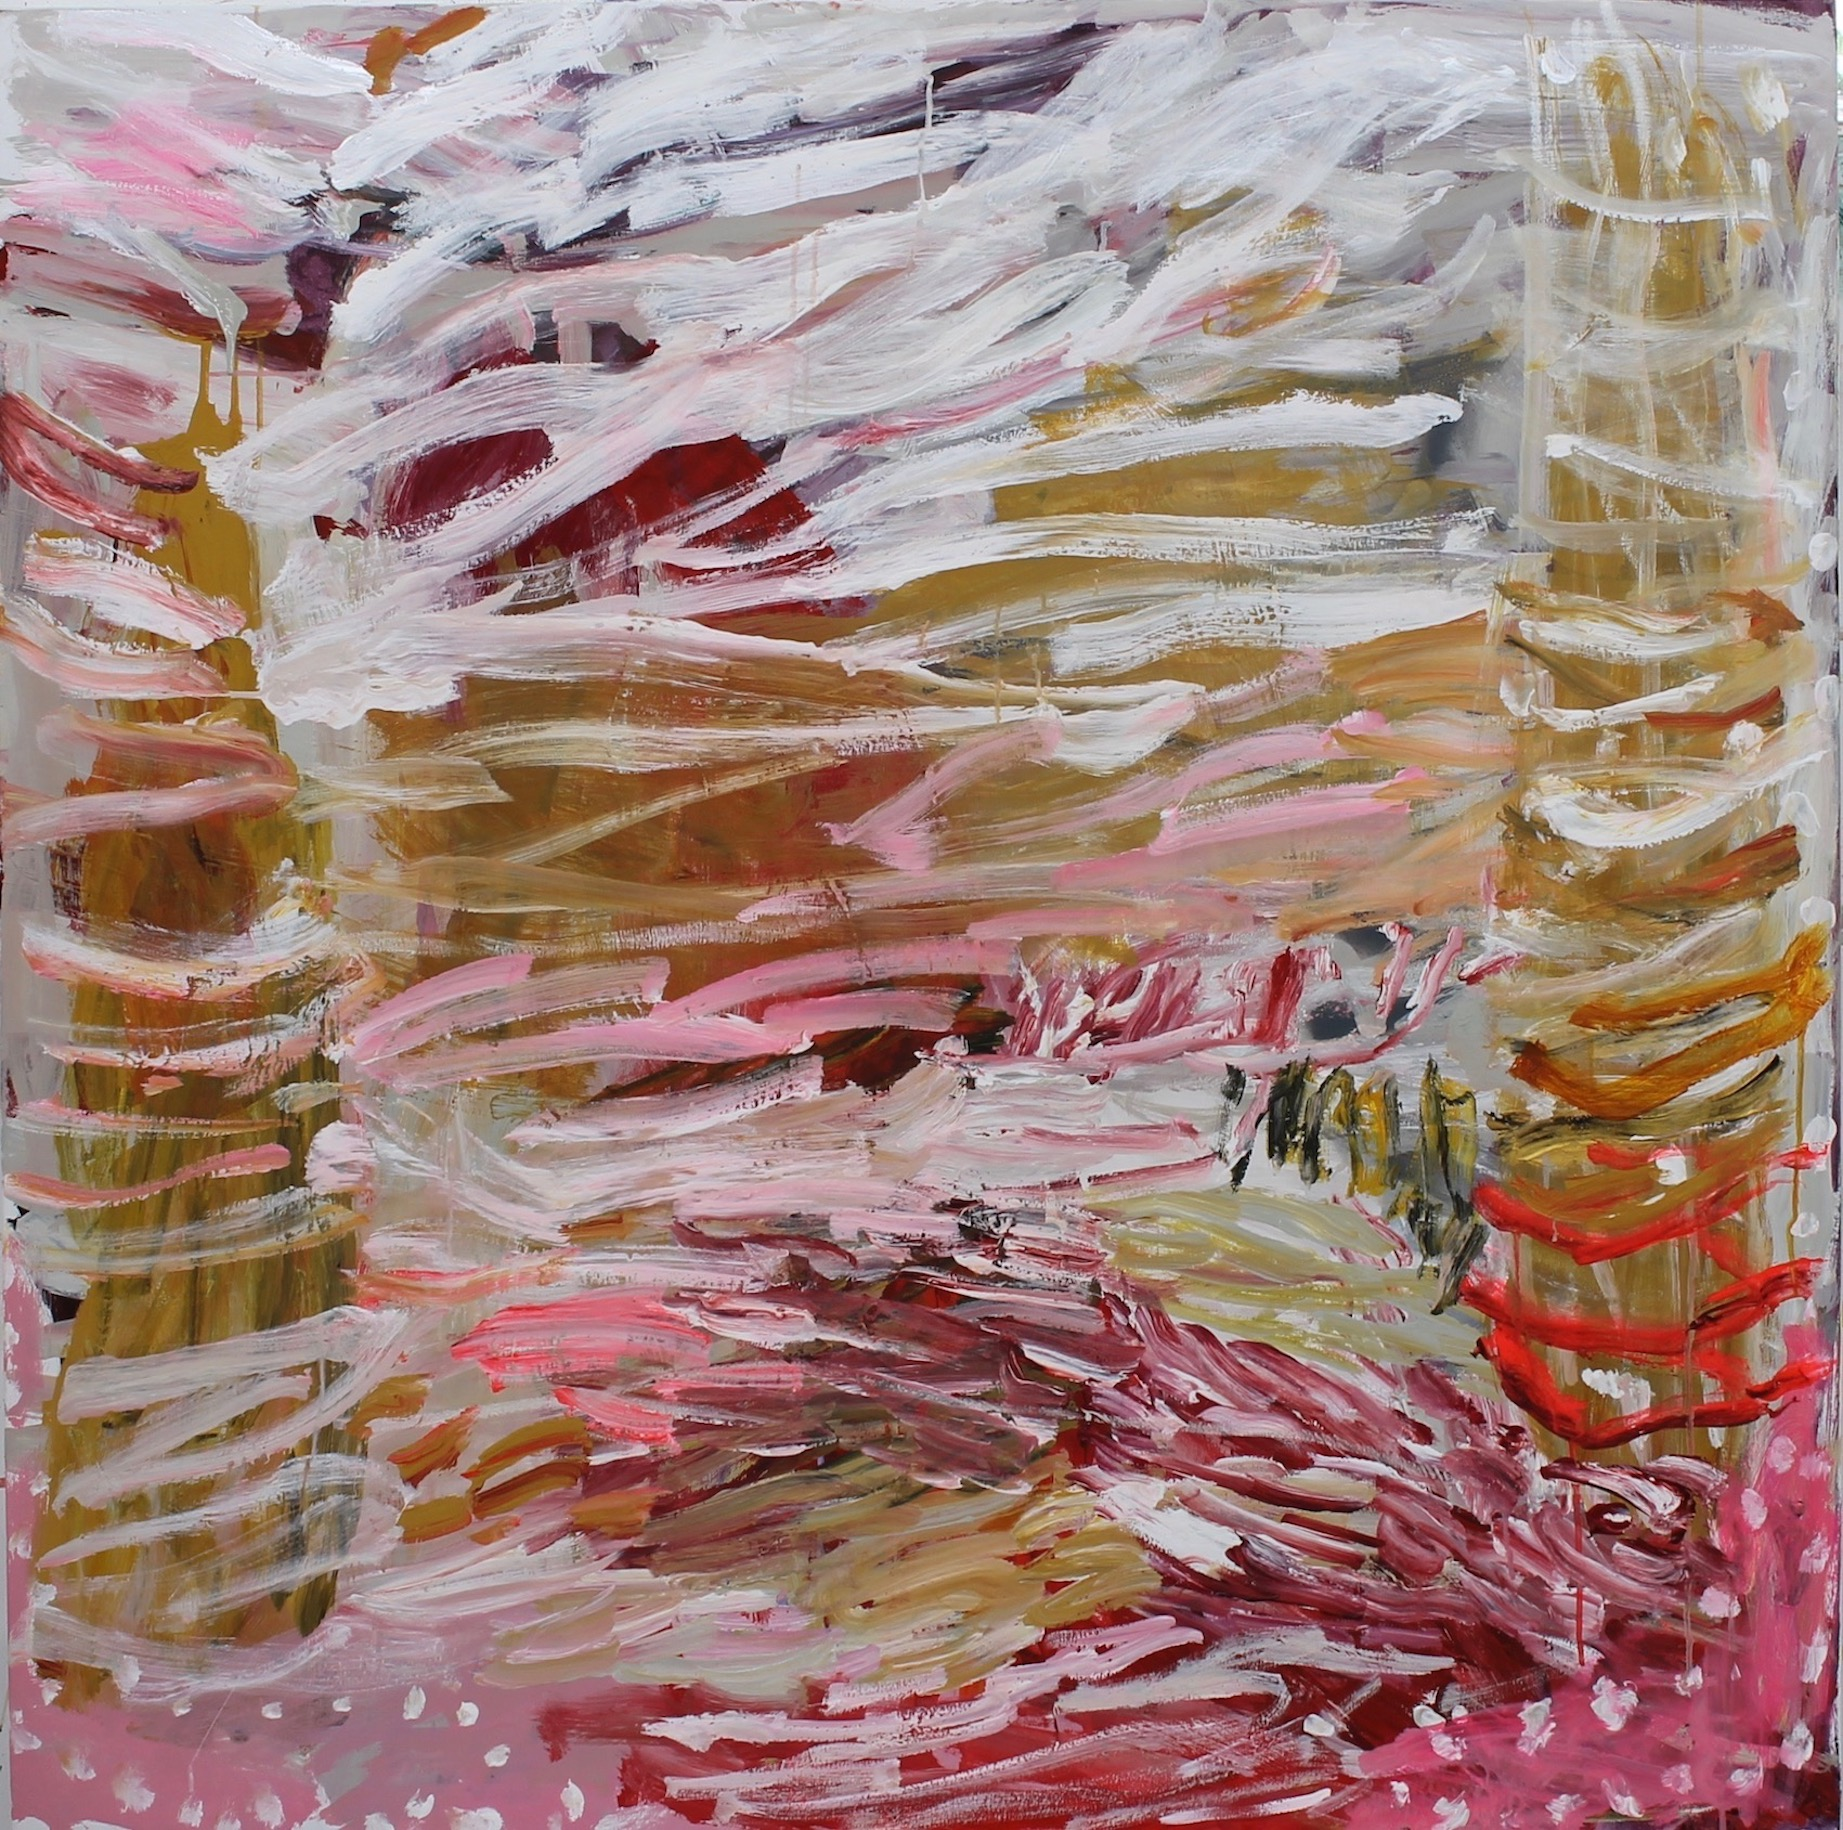 6. Eroded gully inverell 122x122cm polymers polyester by Catherine Cassidy